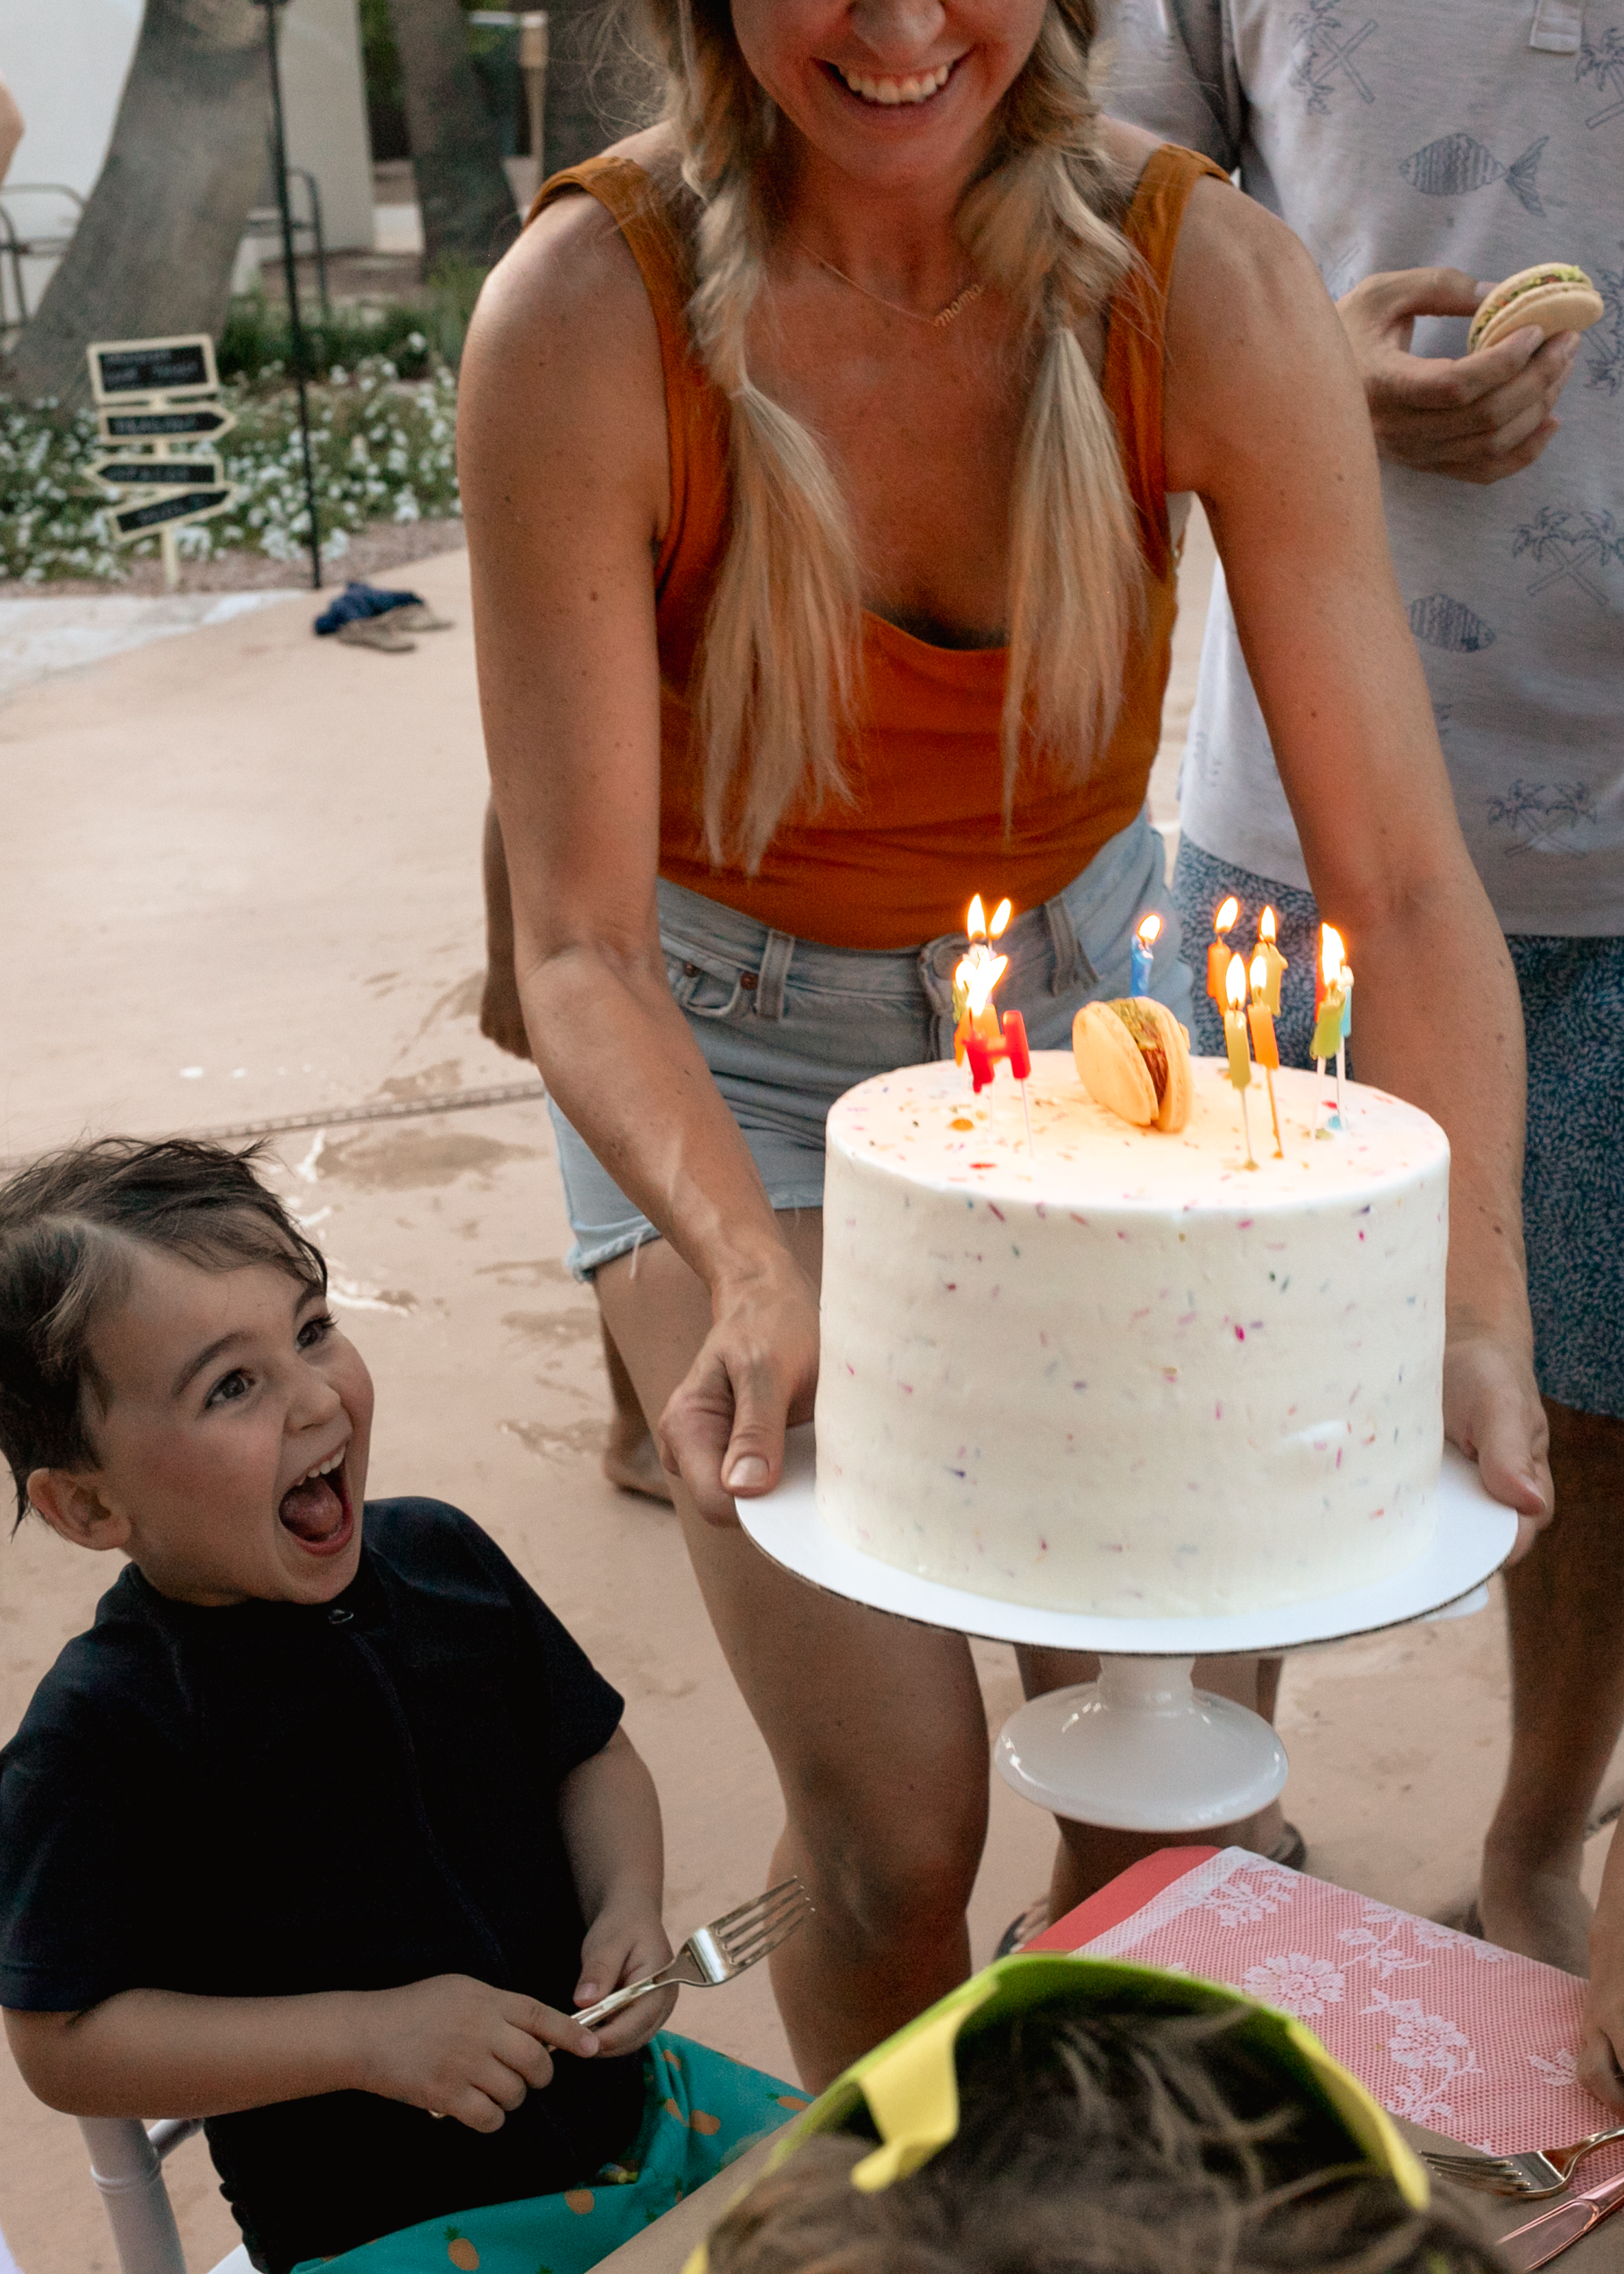 happy fourth birthday! a big confetti cake outside from mom to celebrate. #birthdayparty #cake #tacos